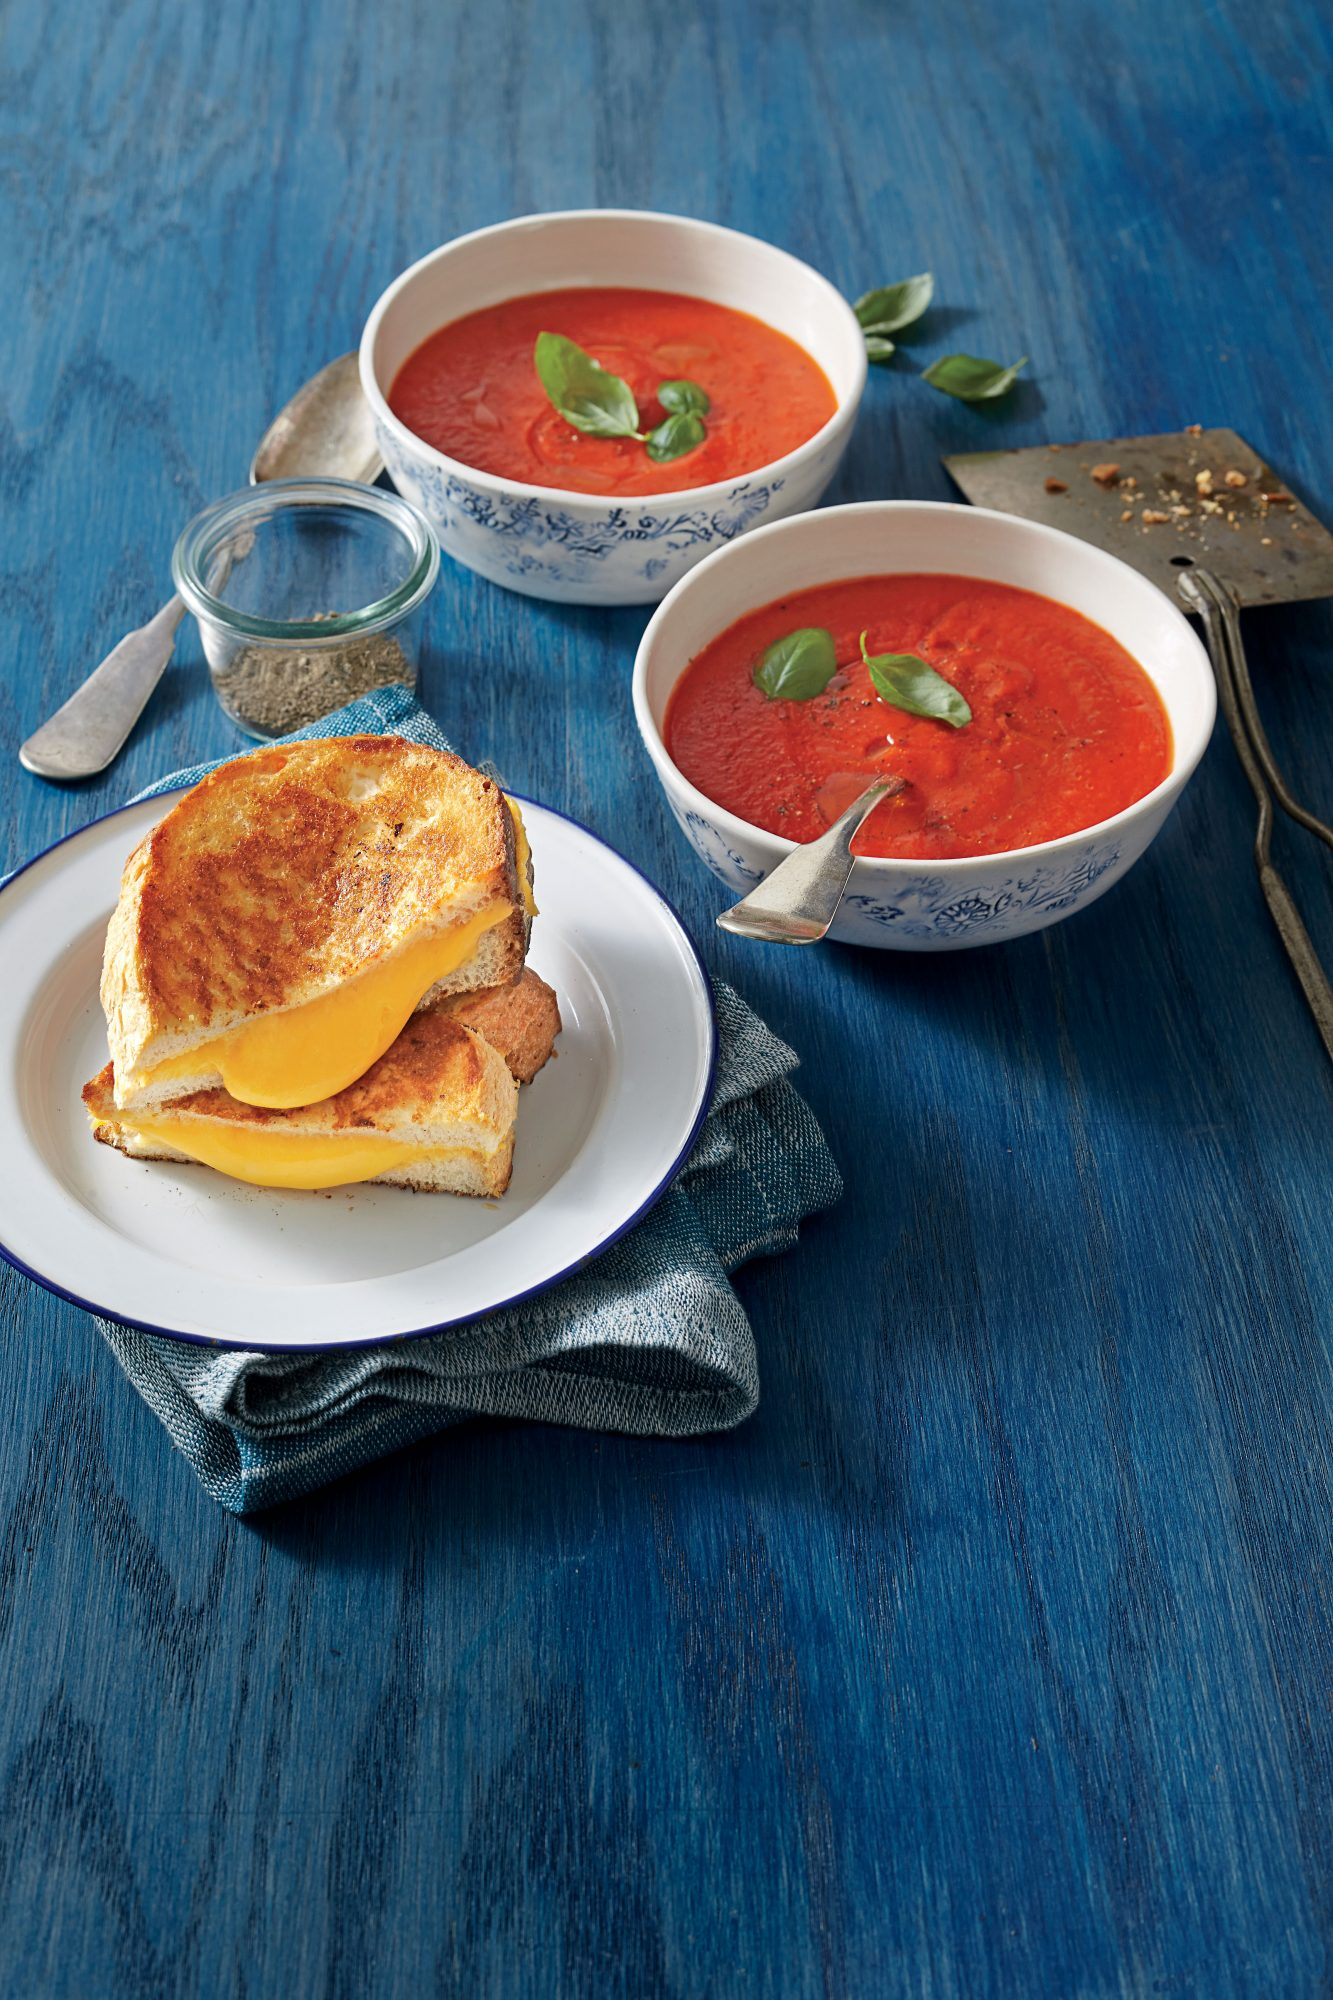 Tomato-and-Red-Pepper Soup